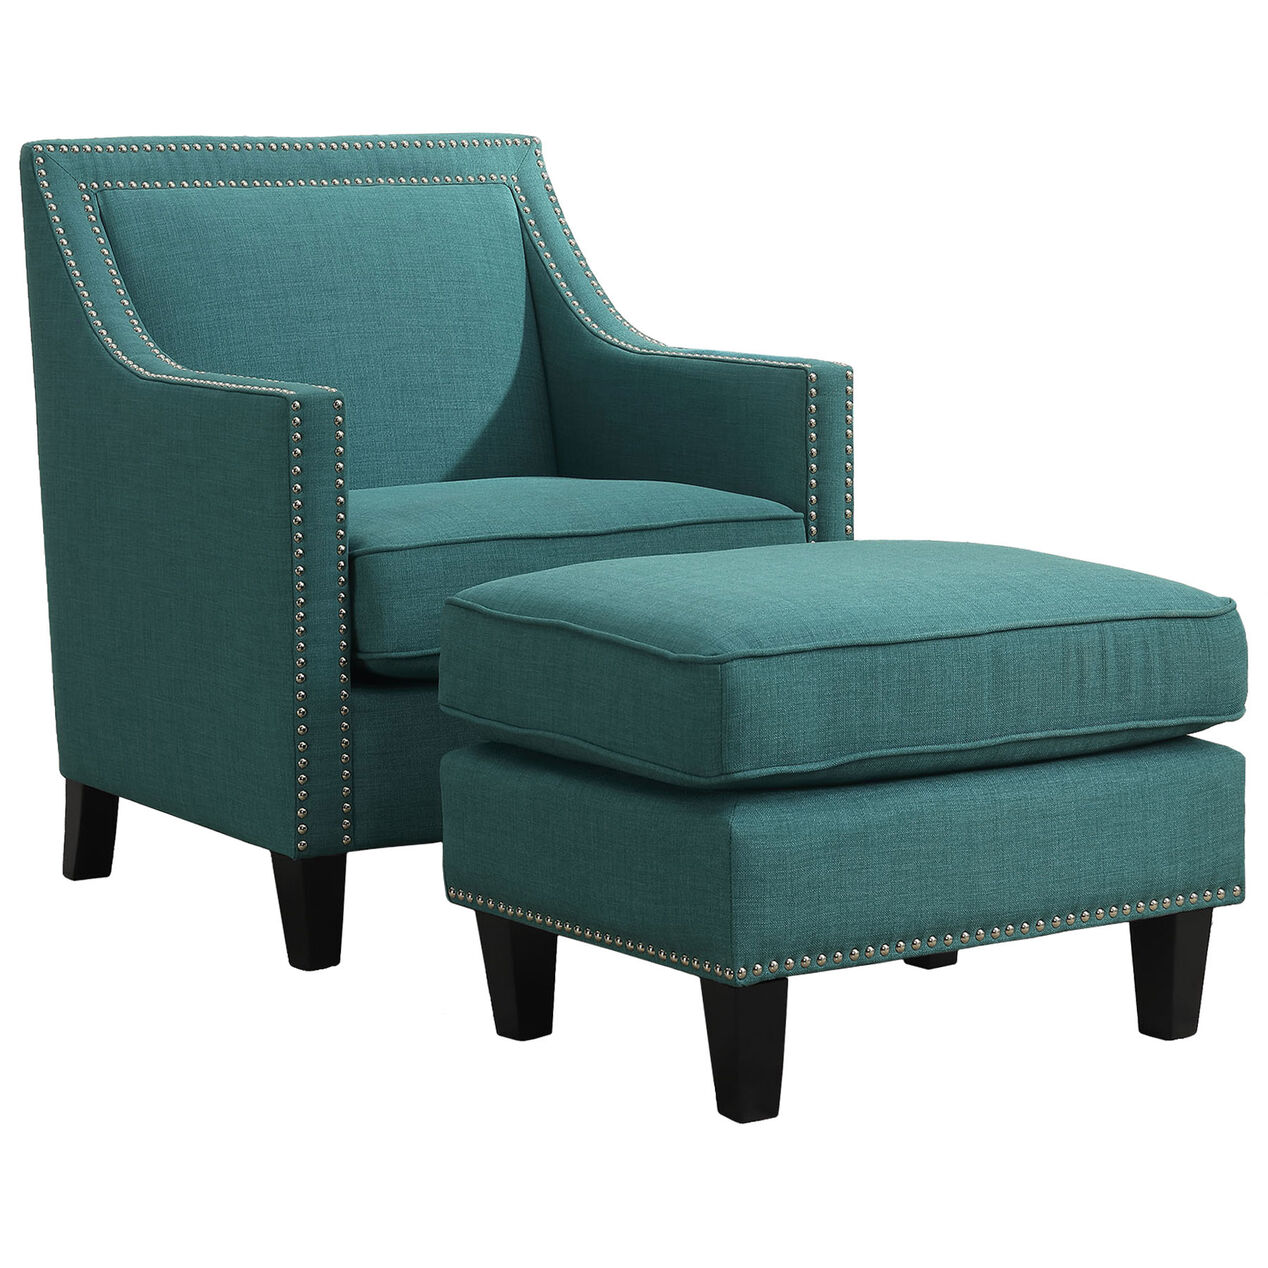 erica chair - teal - at home